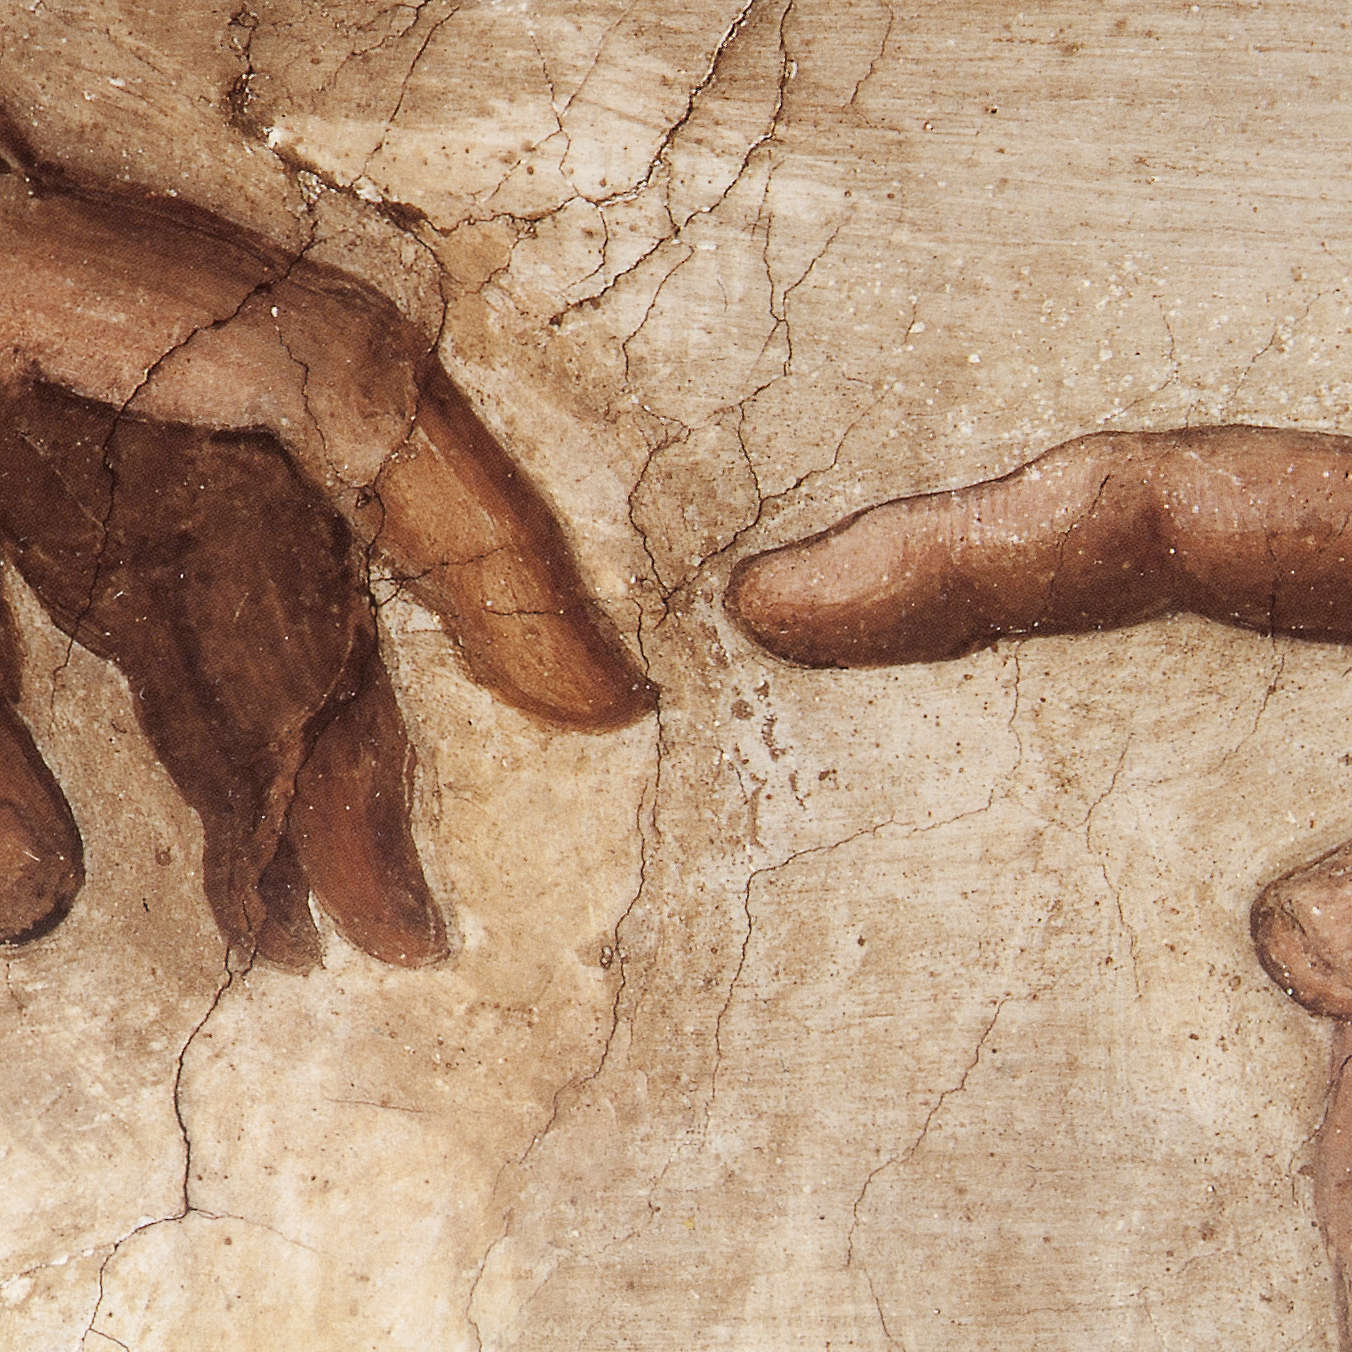 Creation, Sistine Chapel wood panel 3